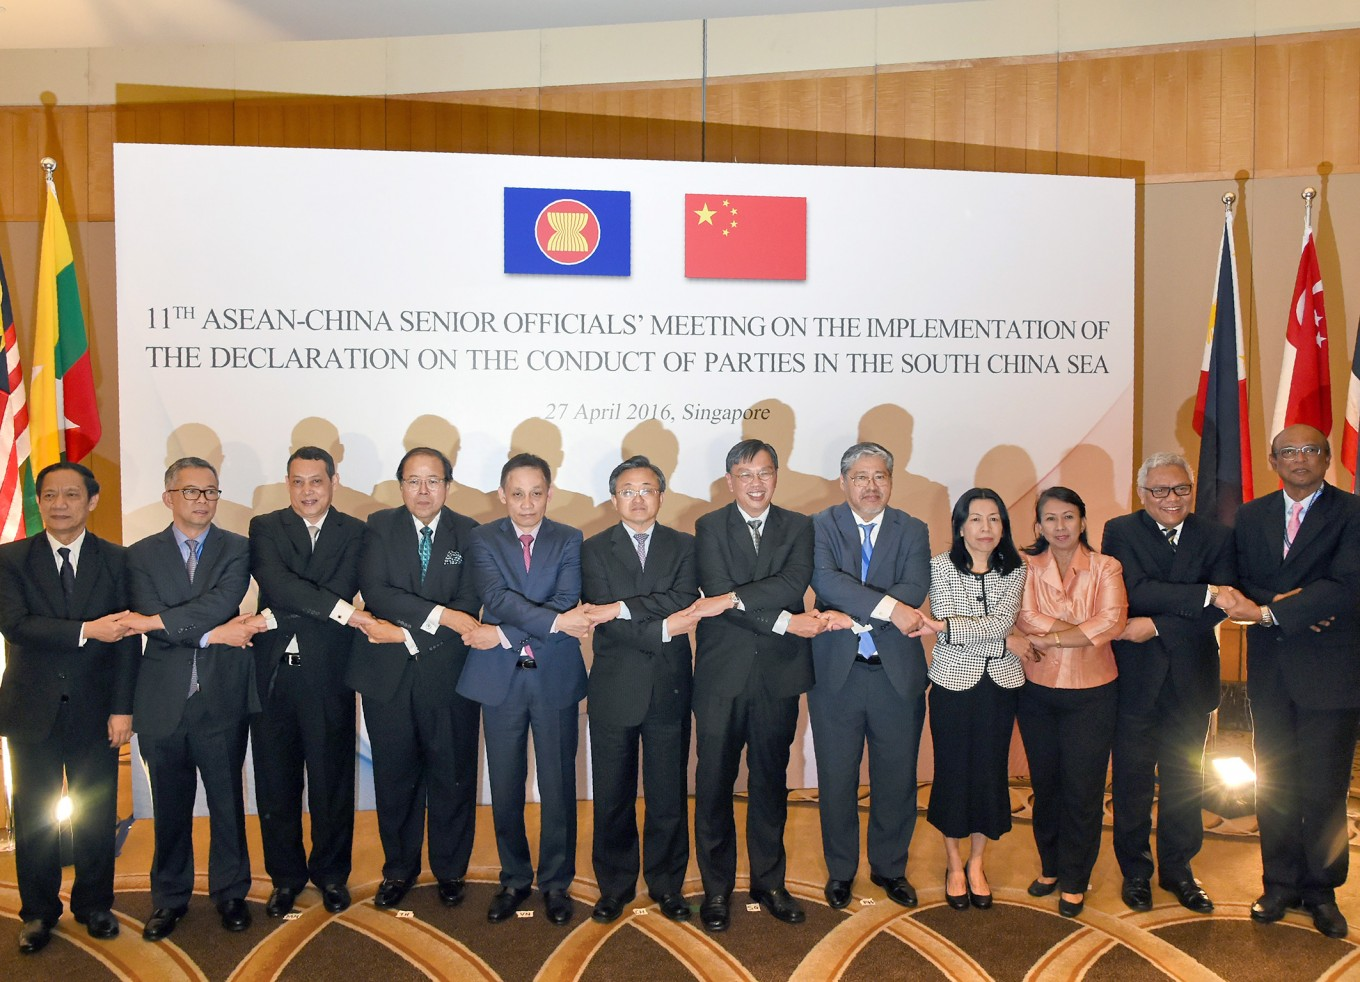 Indonesia to discuss maritime cooperation during ASEAN-China meeting